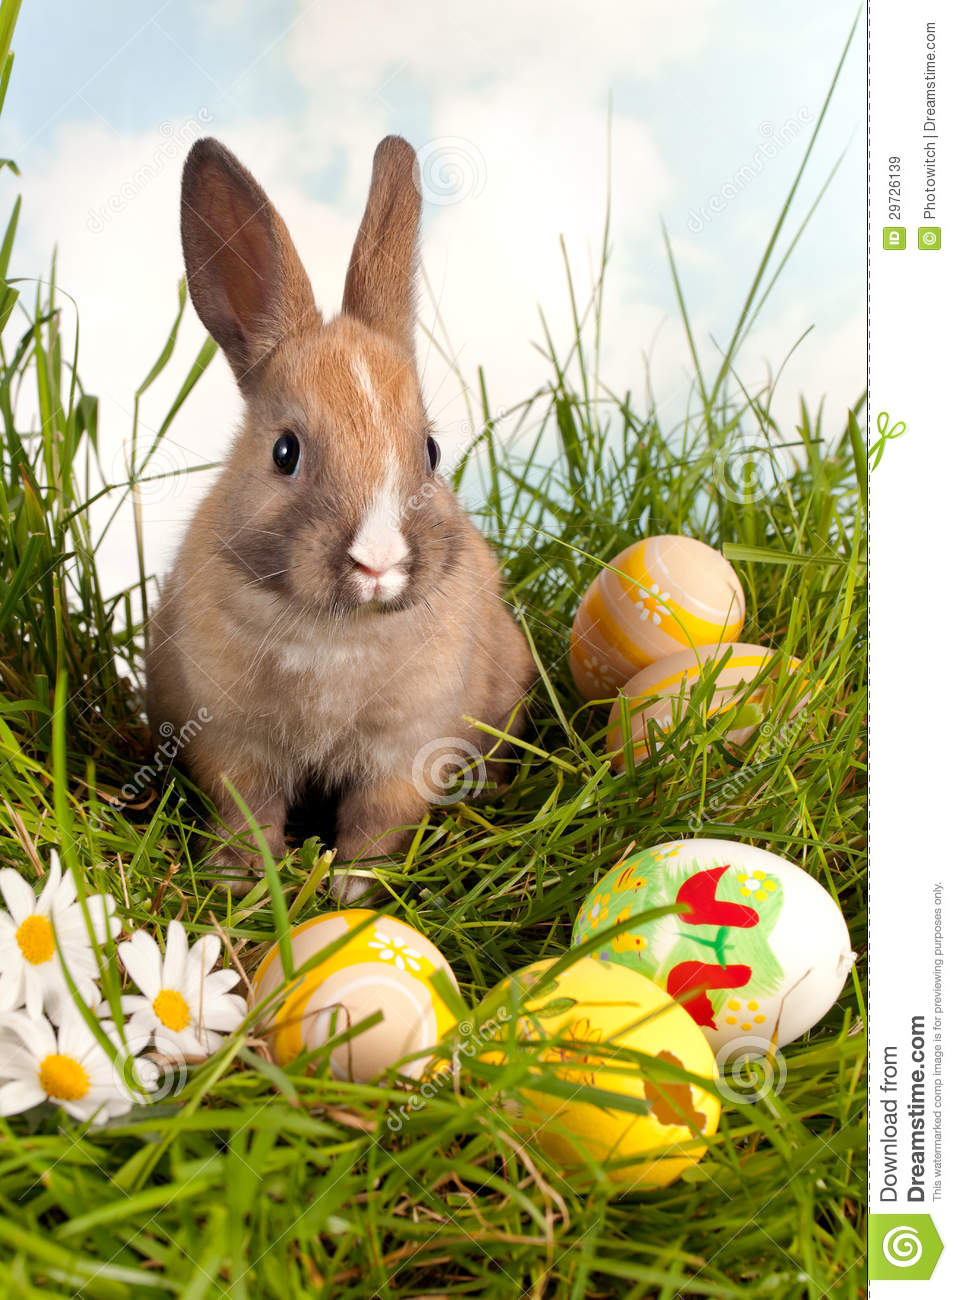 Easter bunny with eggs stock image. Image of wildlife - 29726139 for Real Easter Bunny With Eggs  59jwn